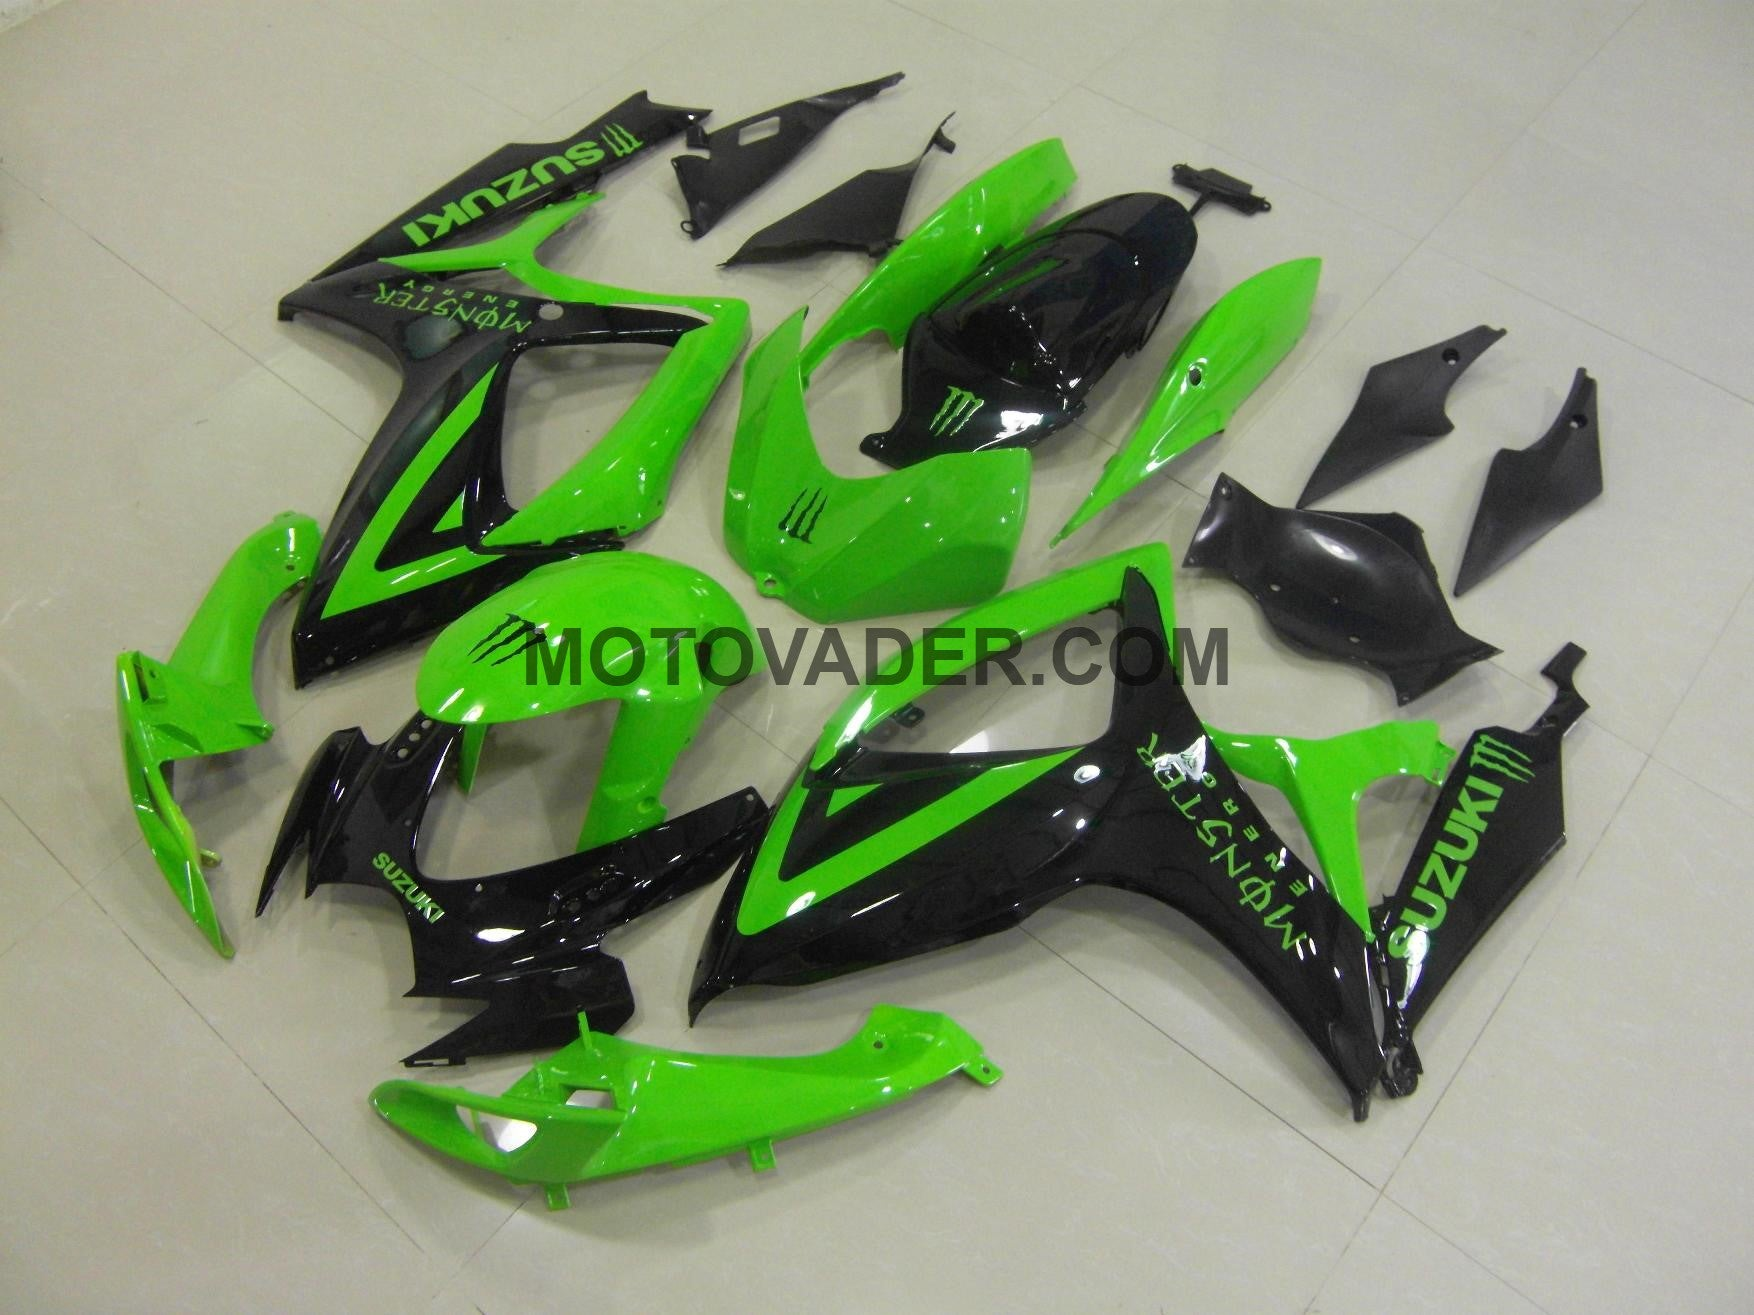 Suzuki GSXR 750 2006-2007 Green & Black Monster Fairing